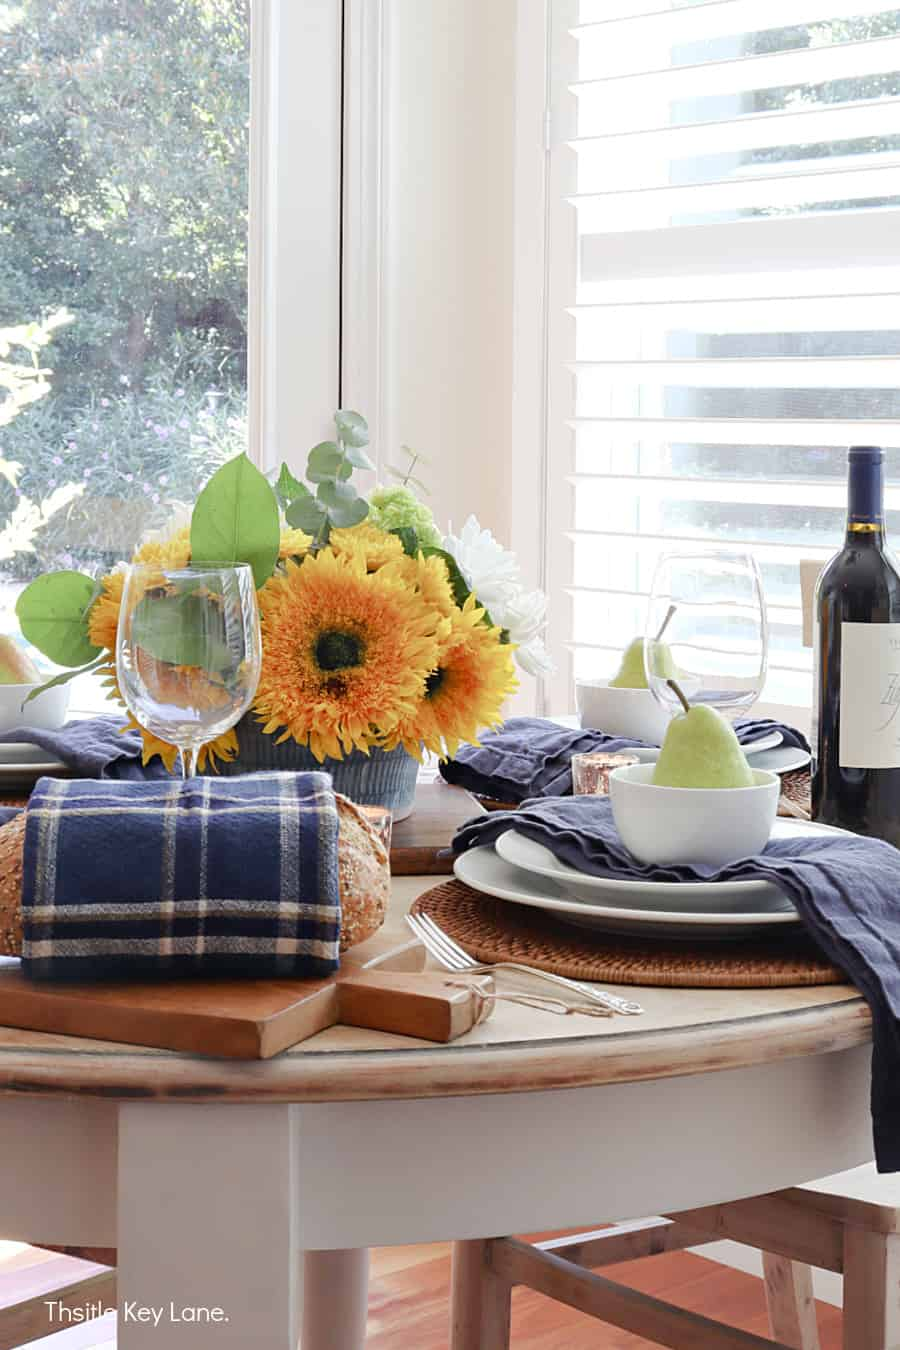 Sunflower centerpiece and navy accents. Early Fall Tablescape With Sunflowers.